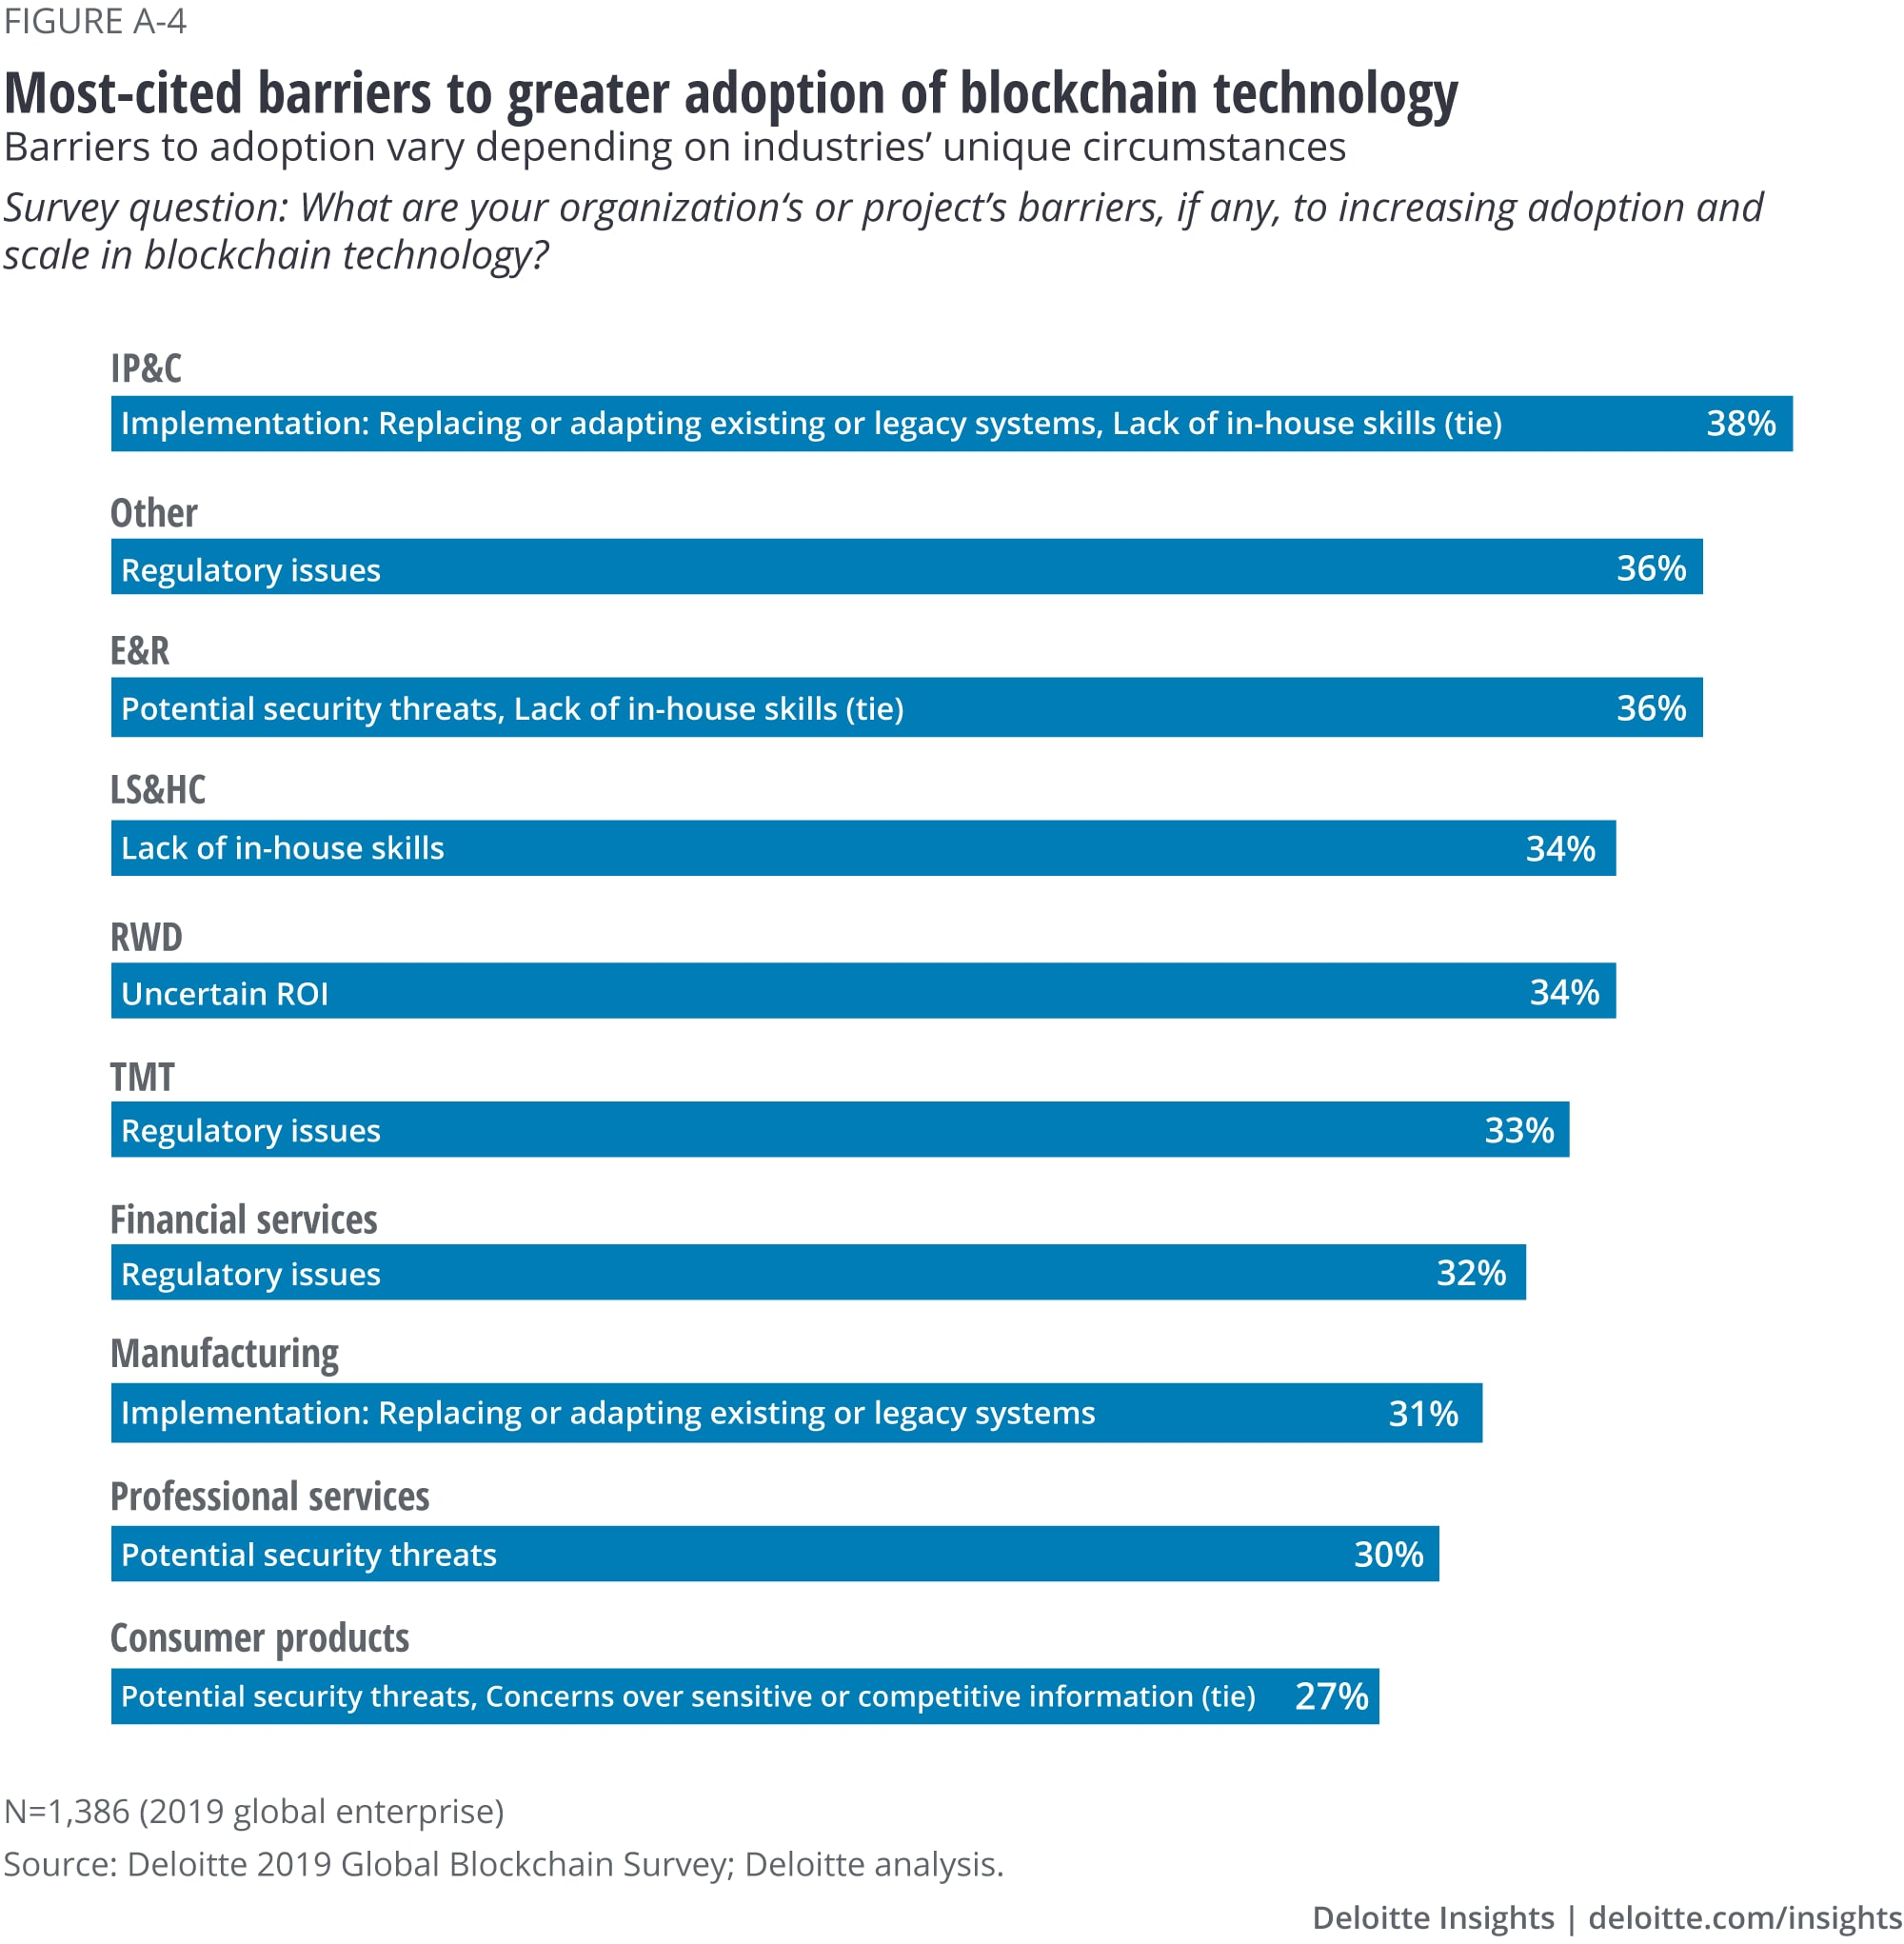 Most-cited barriers to greater adoption in blockchain technology